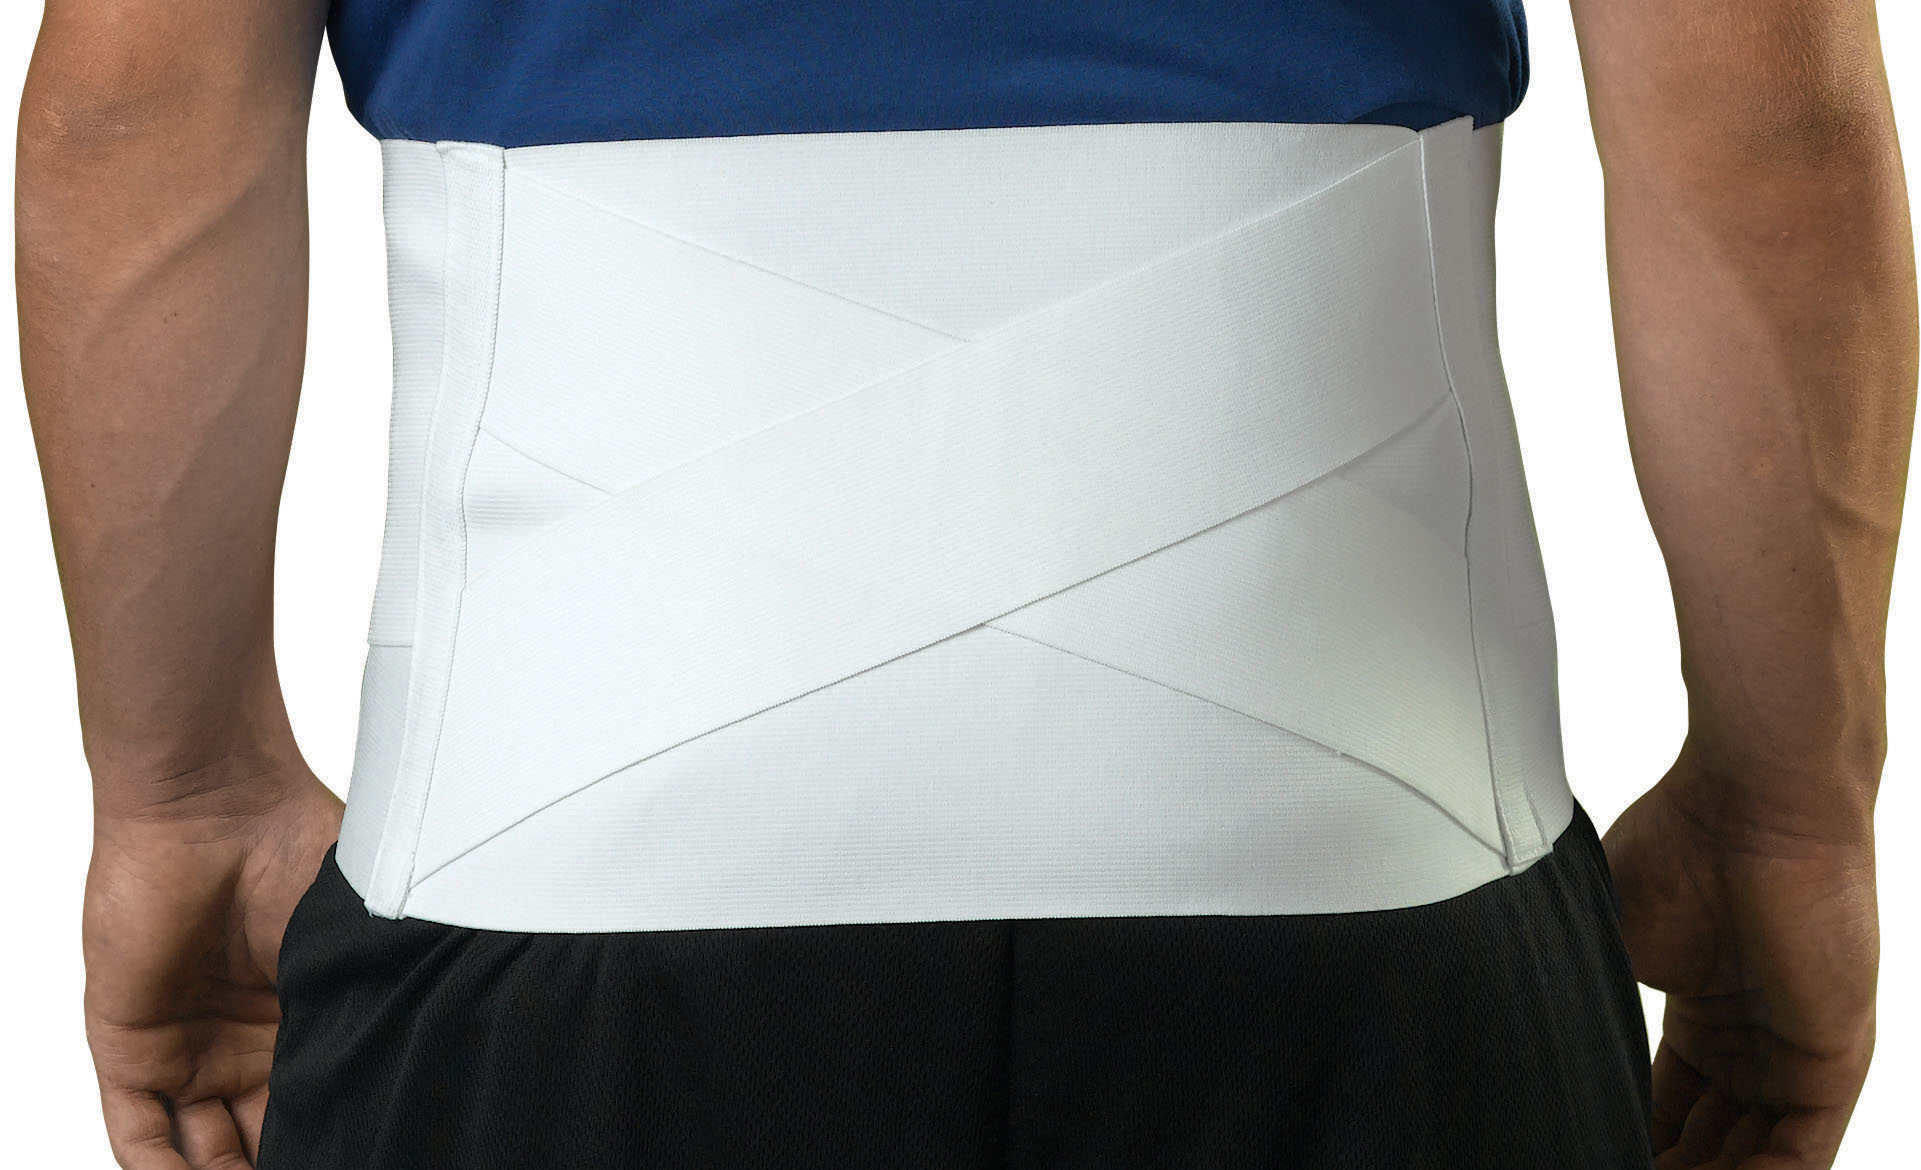 Criss-Cross Back Supports